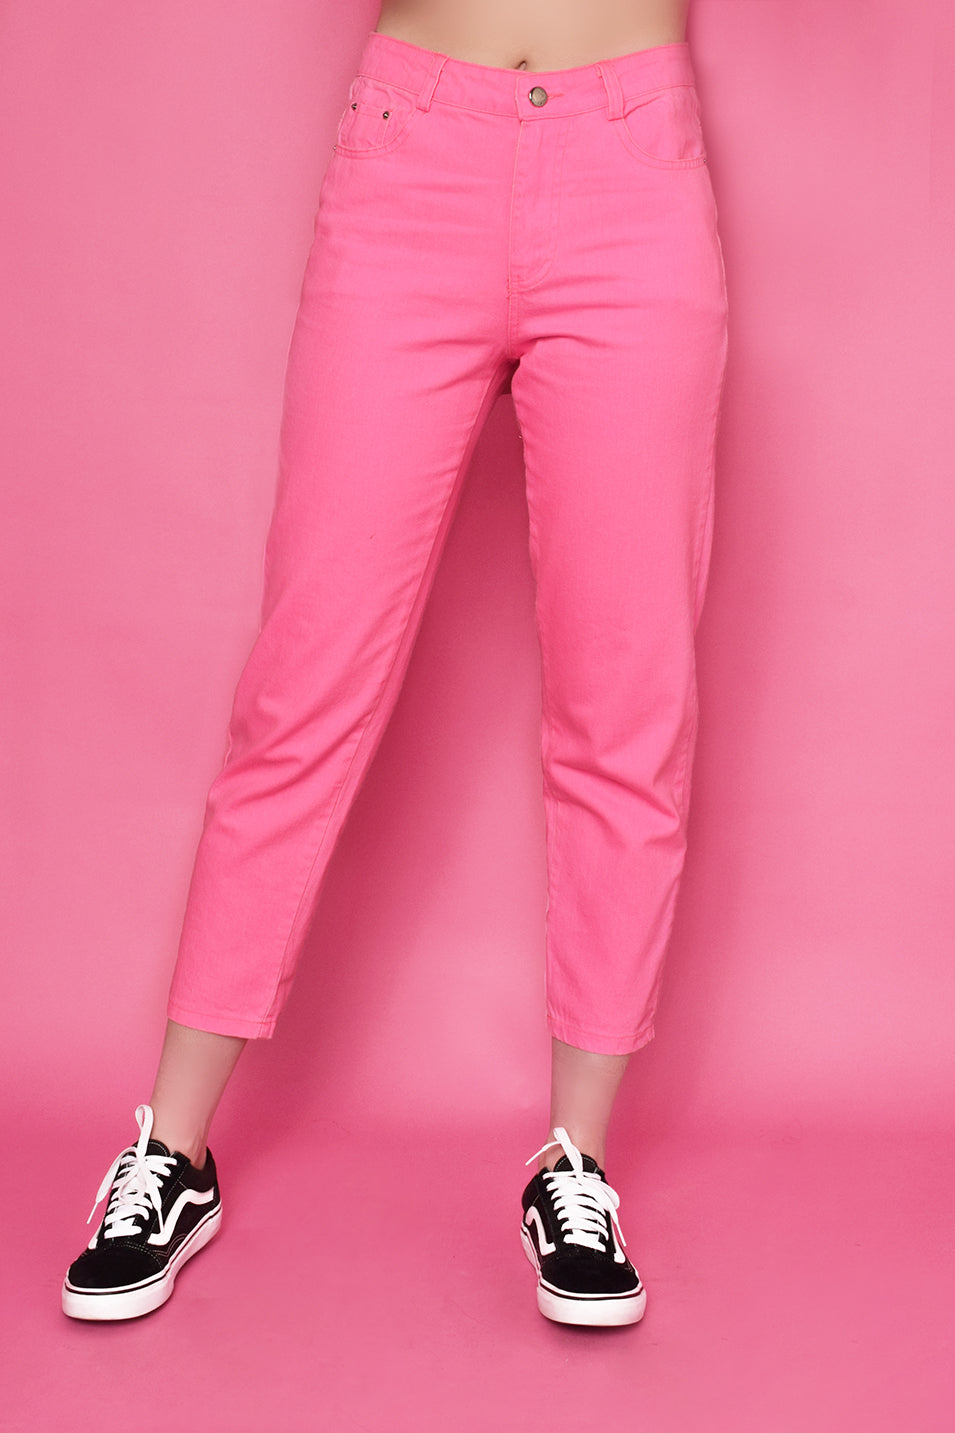 Load image into Gallery viewer, New York Lumo Jeans - Pink